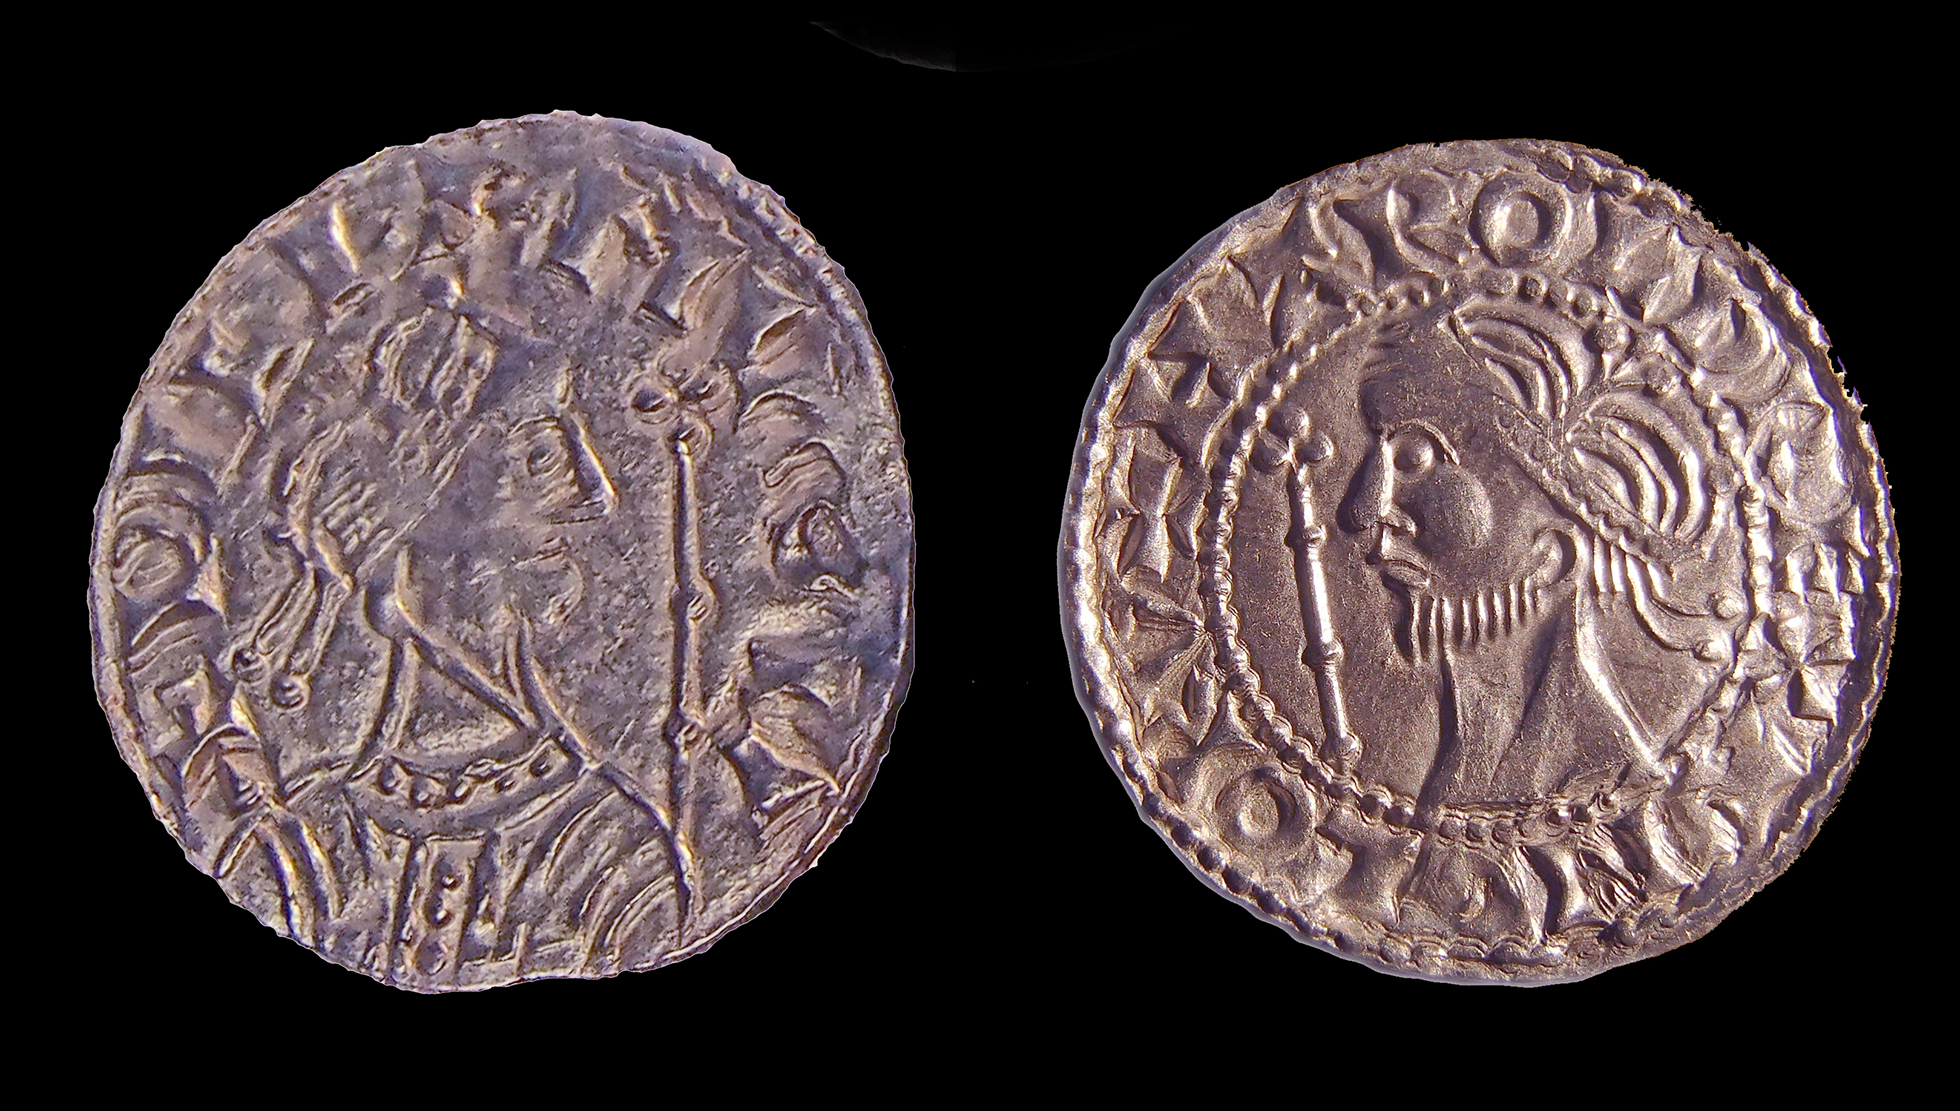 Two copper-coloured coins from the Watlington Hoard, on the left is William the Conqueror and on the right is Harold II.